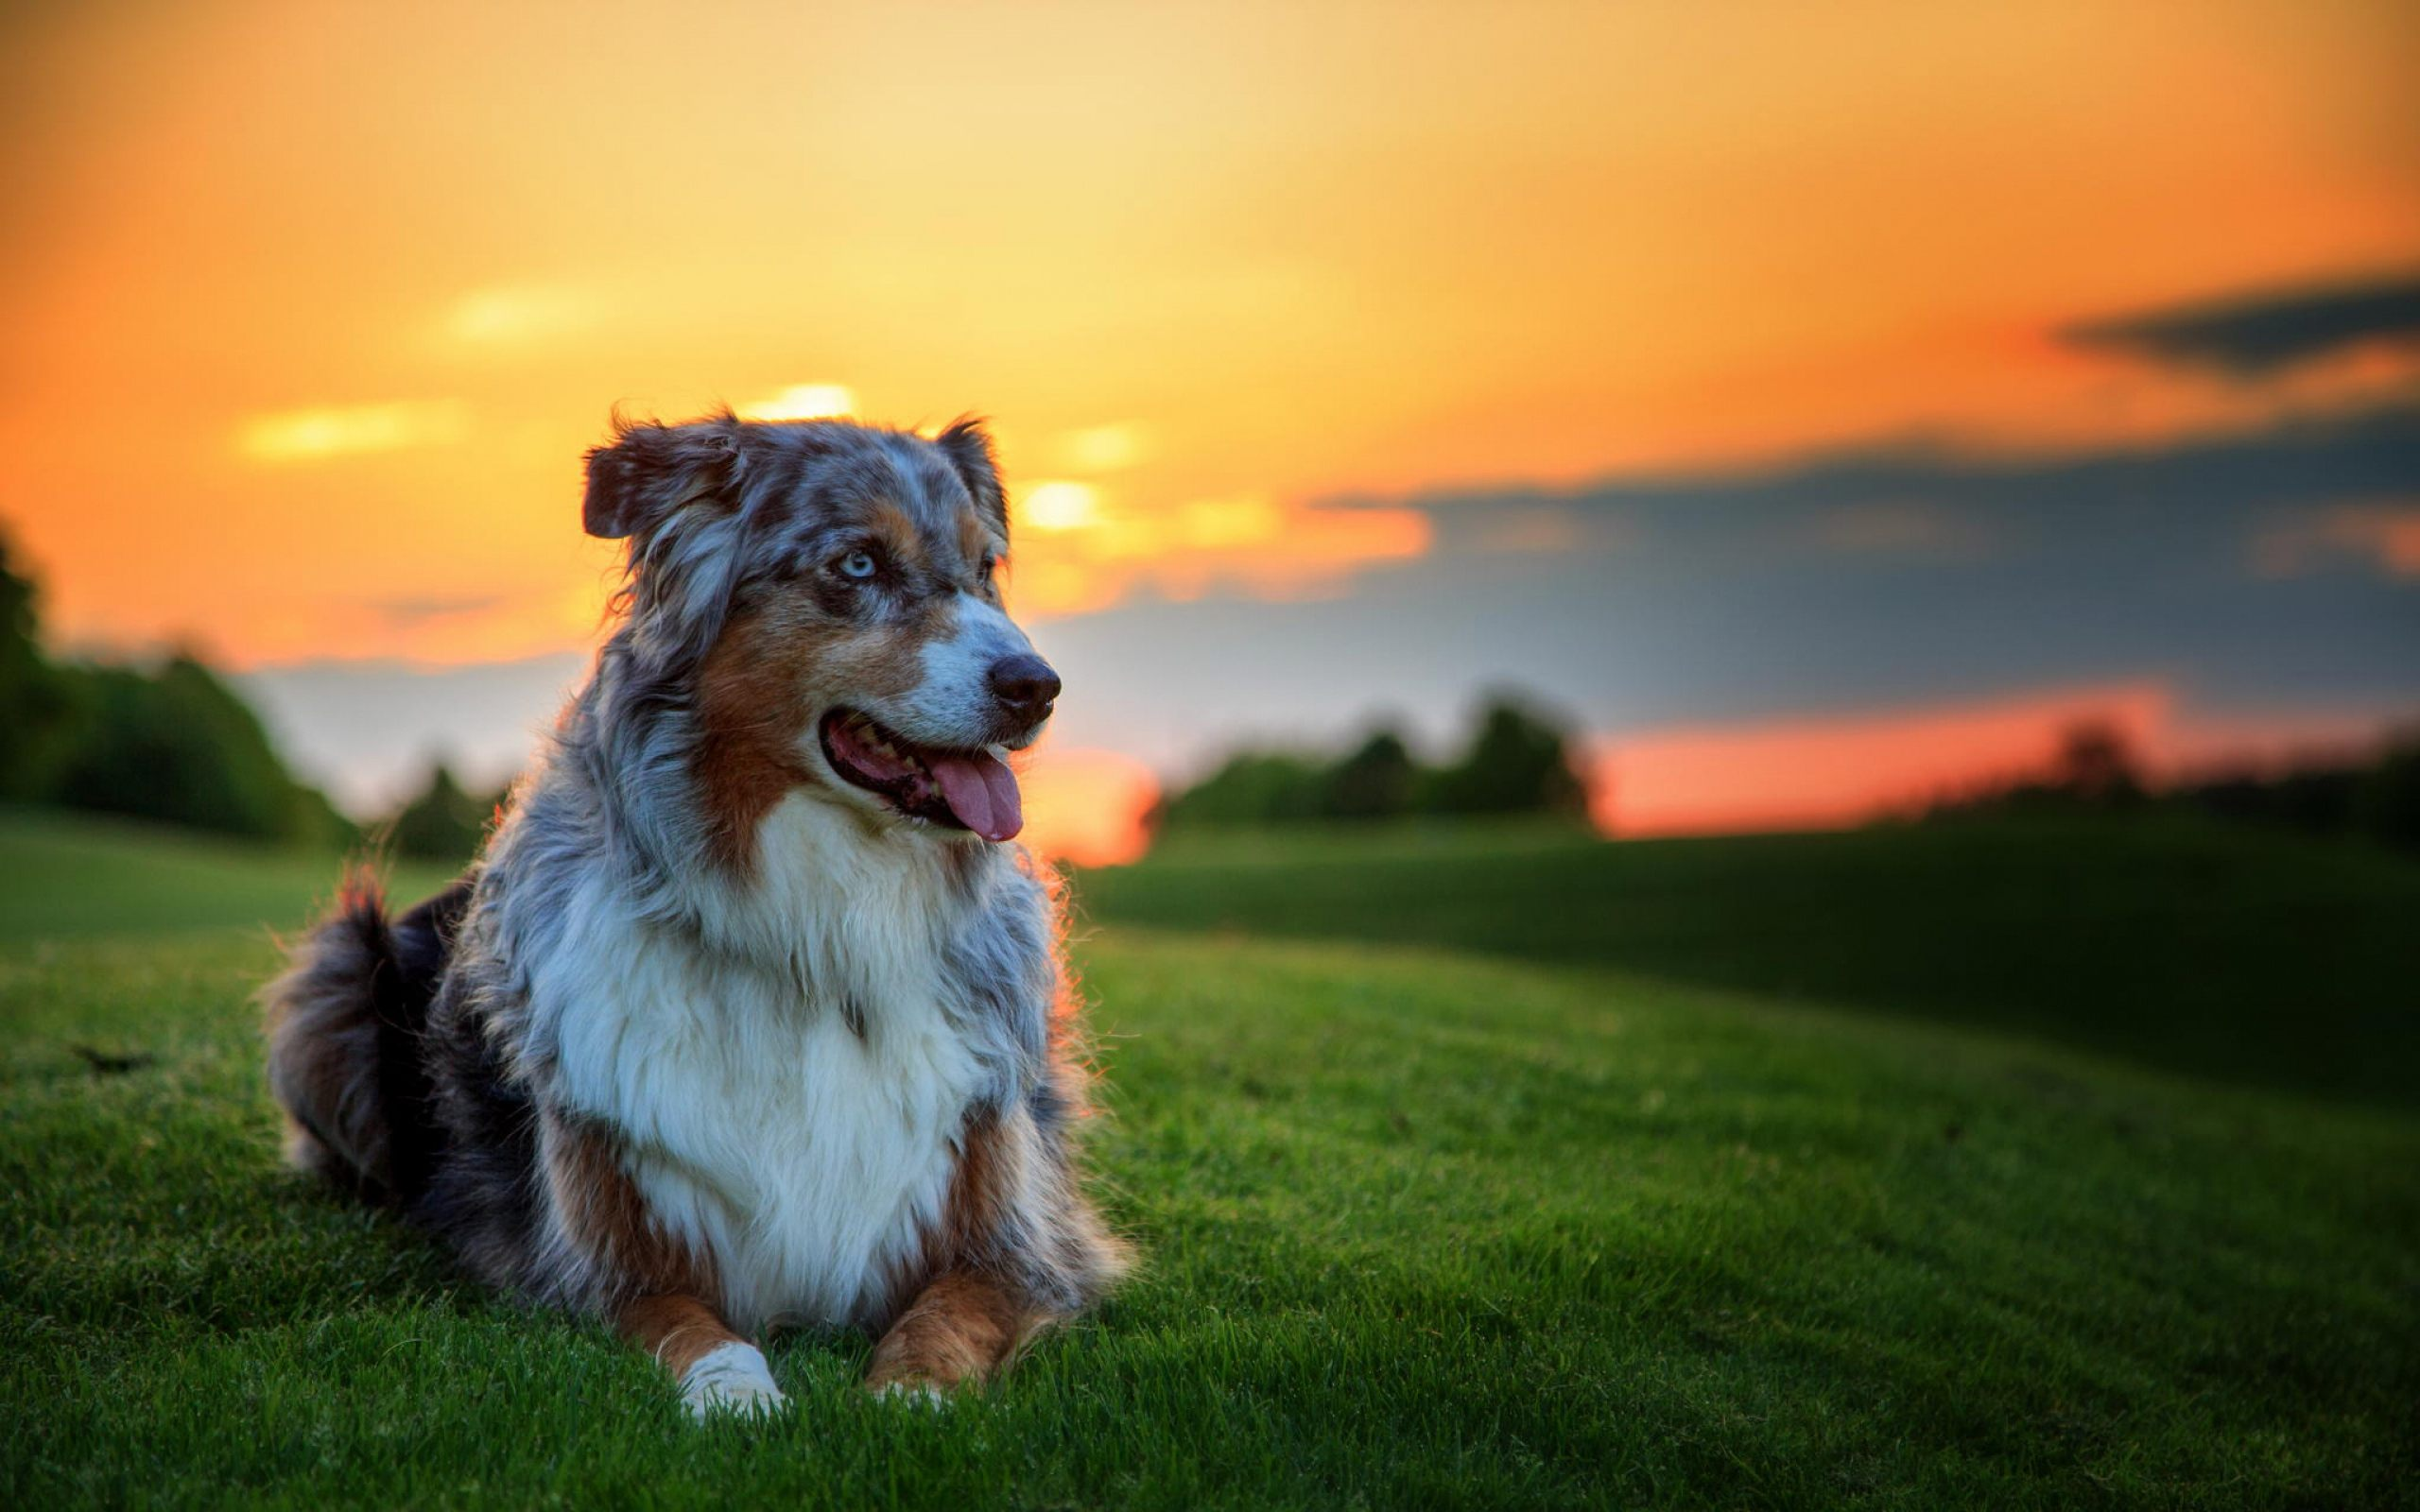 Dog Images Bethany Sarro download on 2560x1600